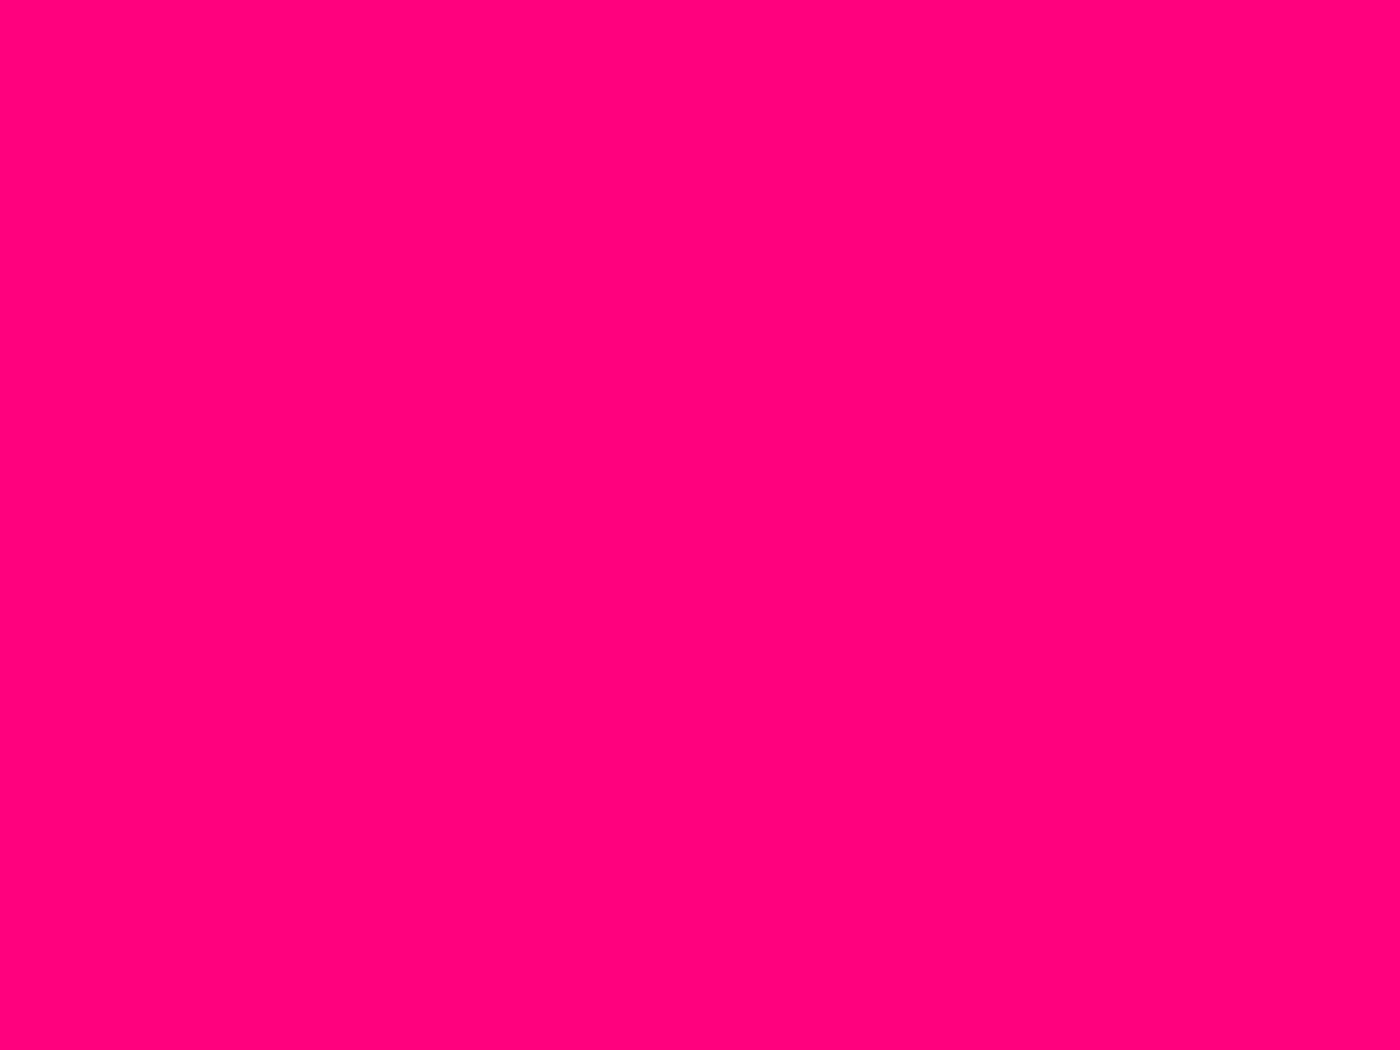 Pink solid color background view and download the below background 1400x1050